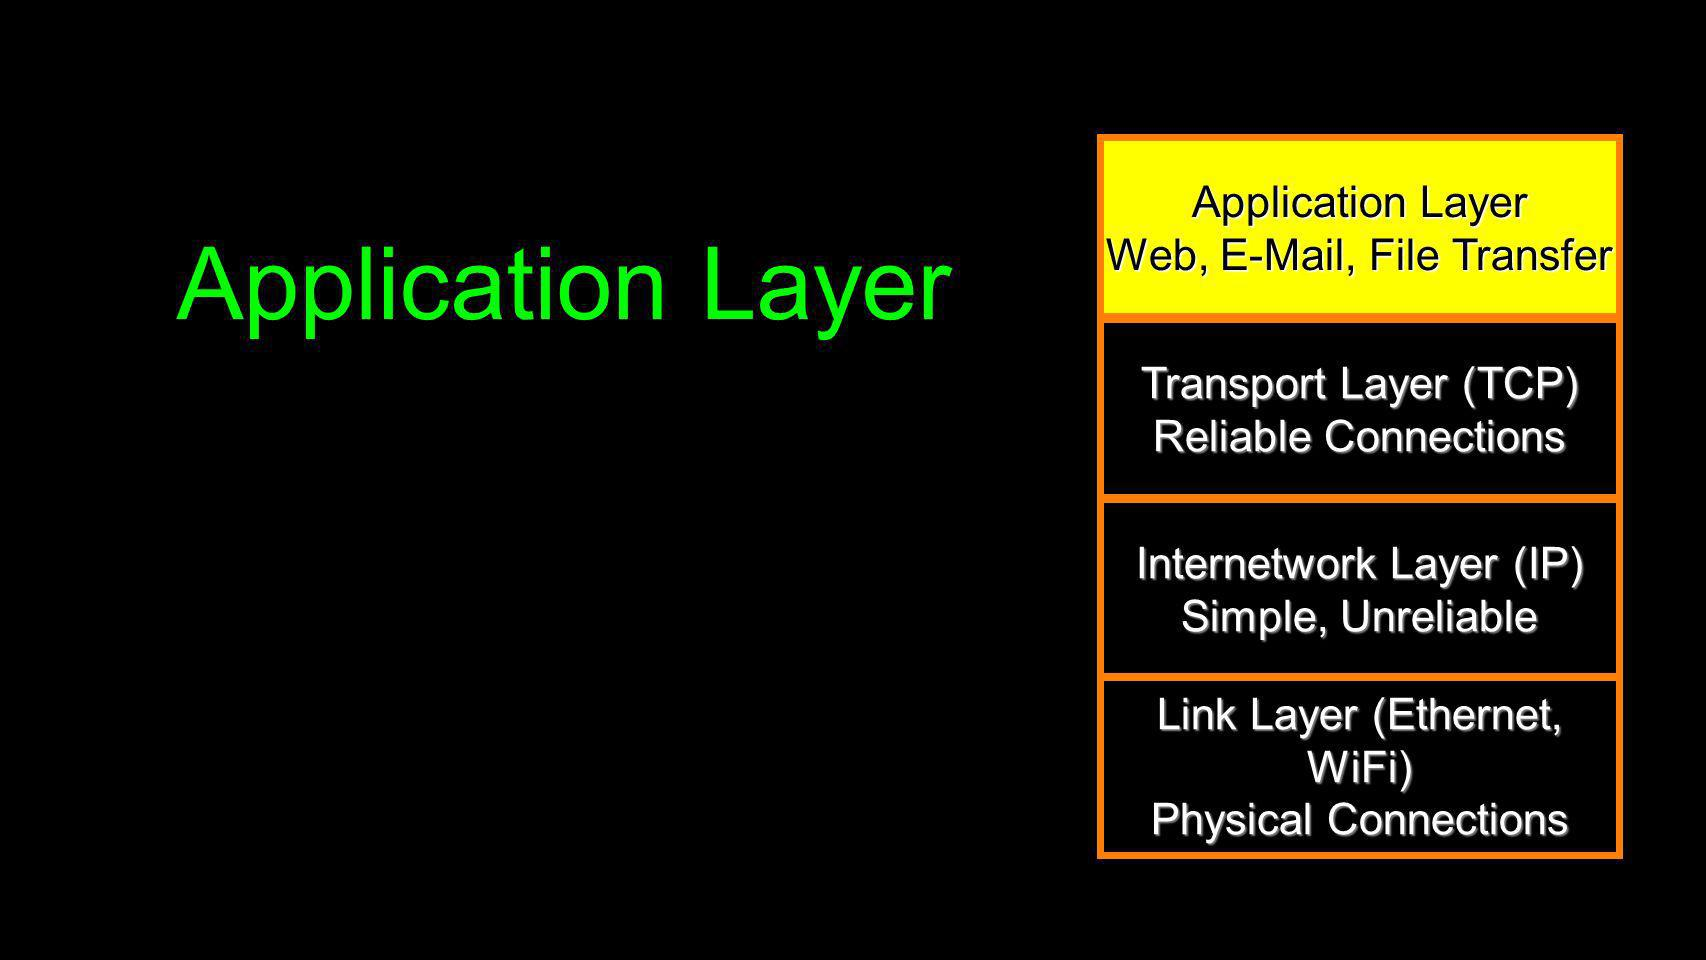 Application Layer Application Layer Web, E-Mail, File Transfer